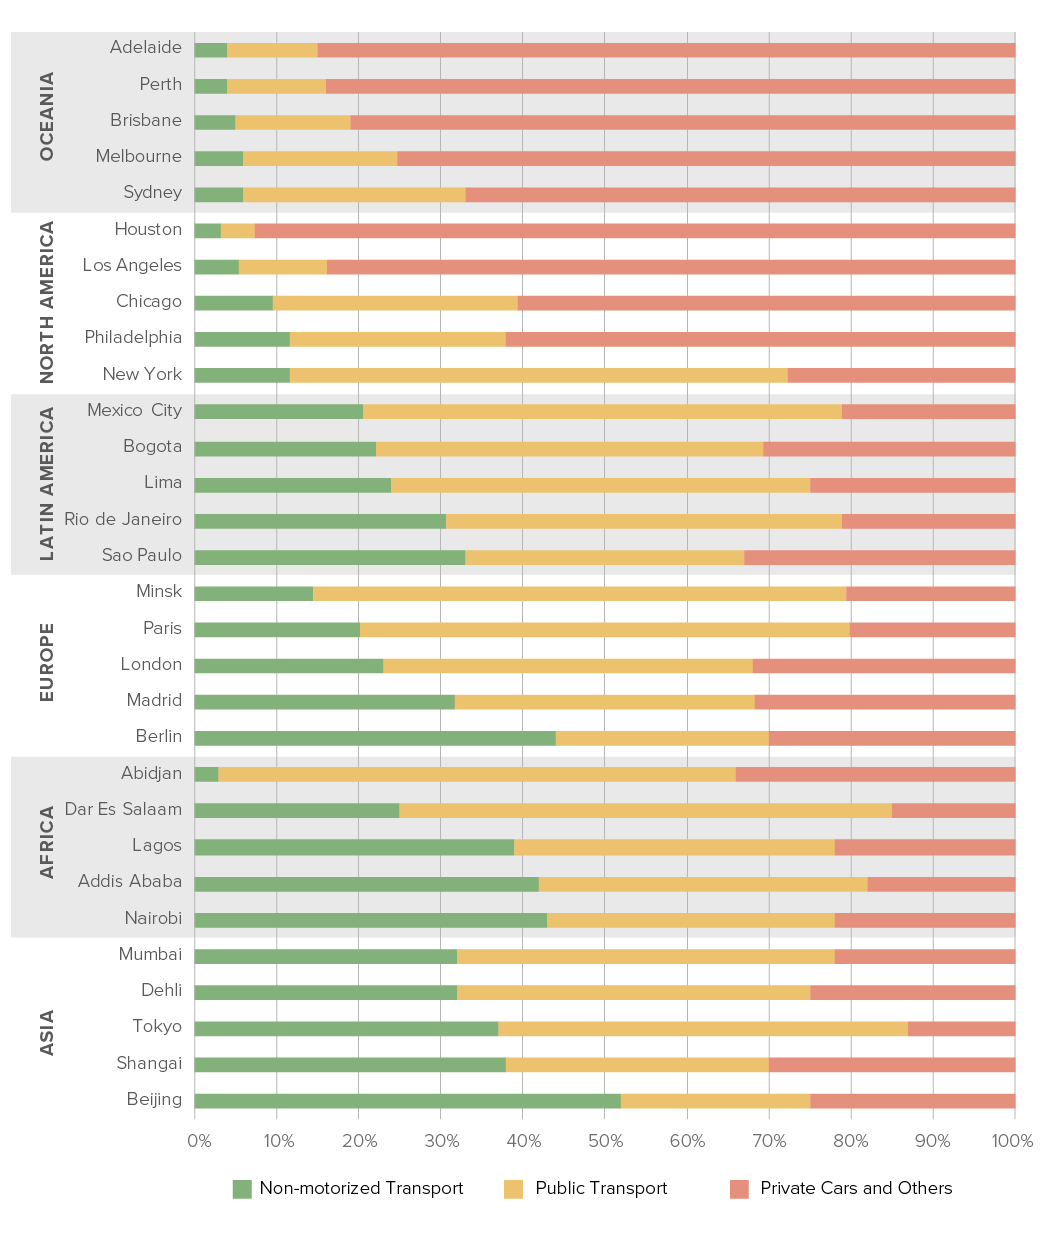 <p>Modal share for 5 of the 10 largest cities in each region. Embracing low-carbon transport infrastructure is one of the most difficult but consequential changes cities can make. Source: New Climate Economy</p>